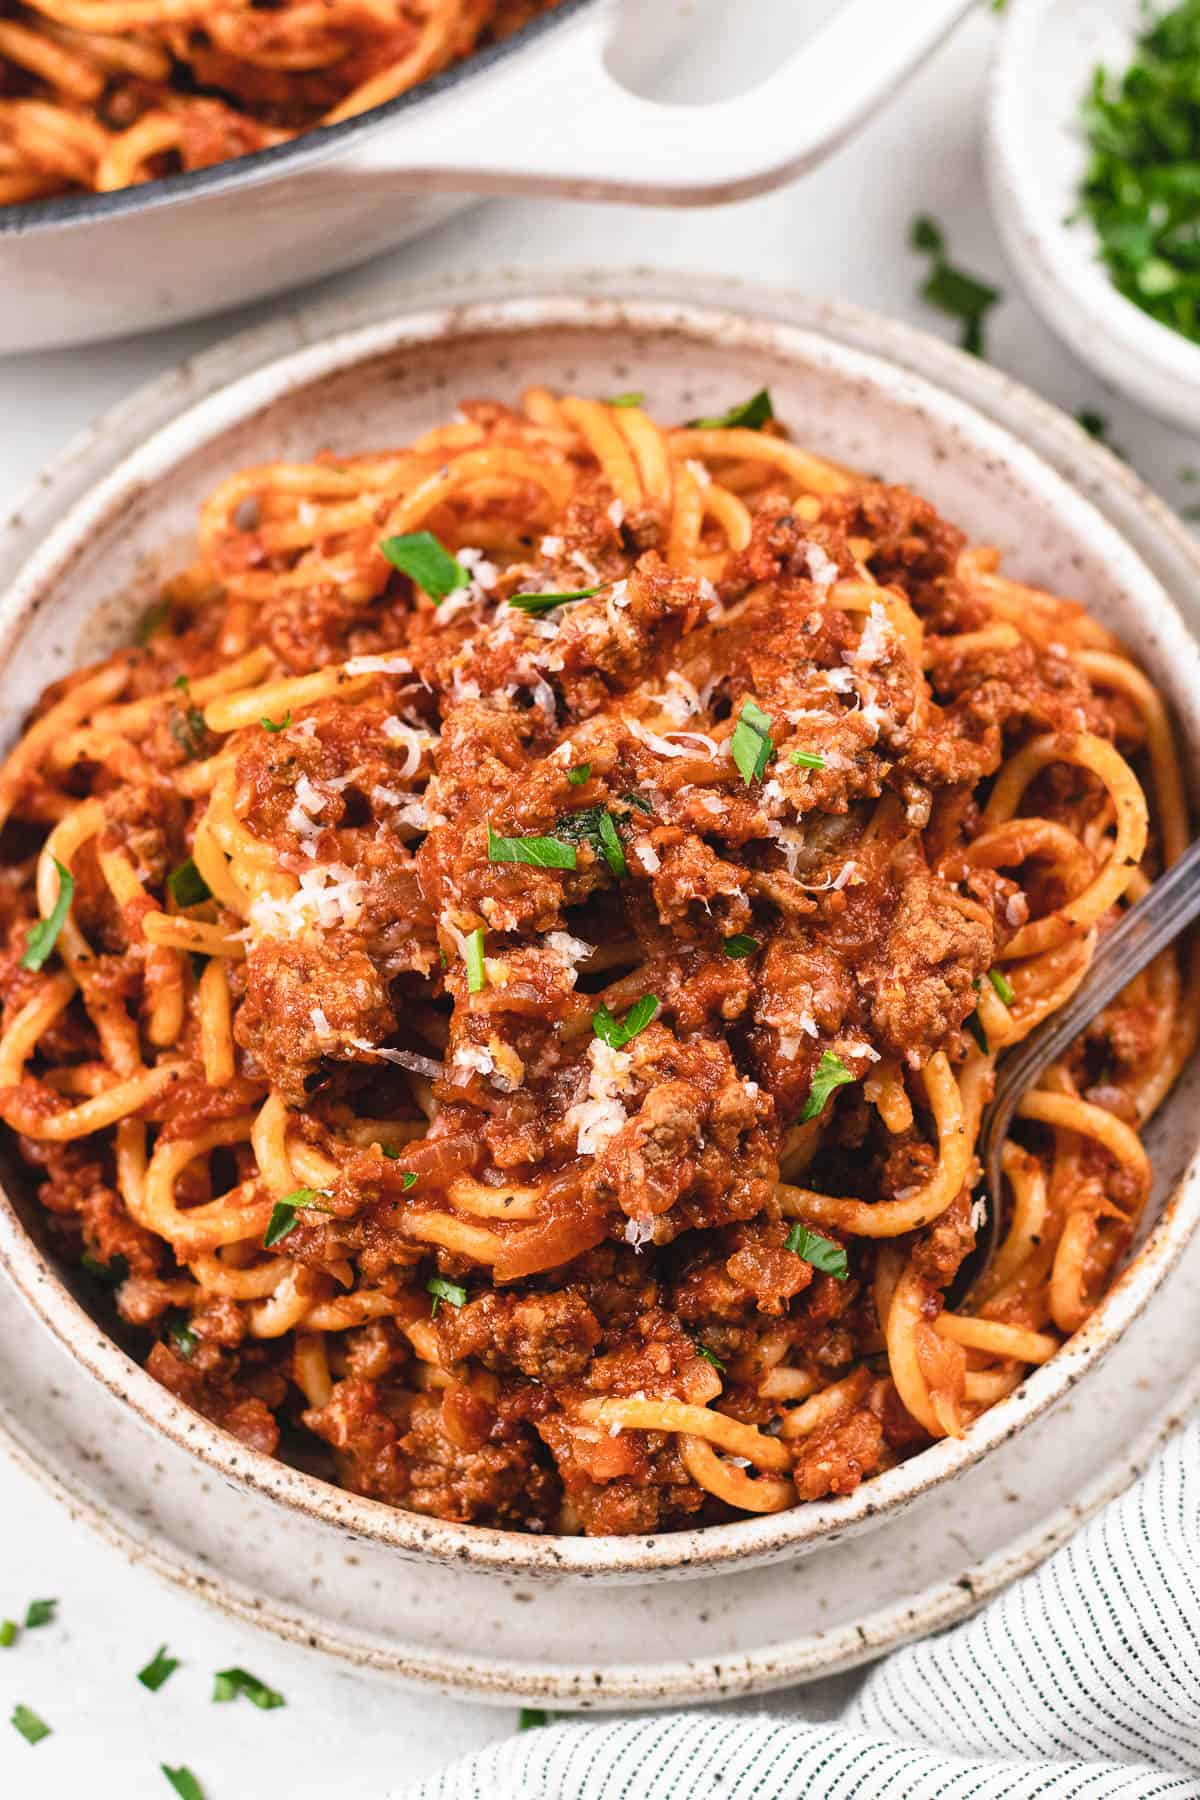 Spaghetti Bolognese in a bowl with a fork.